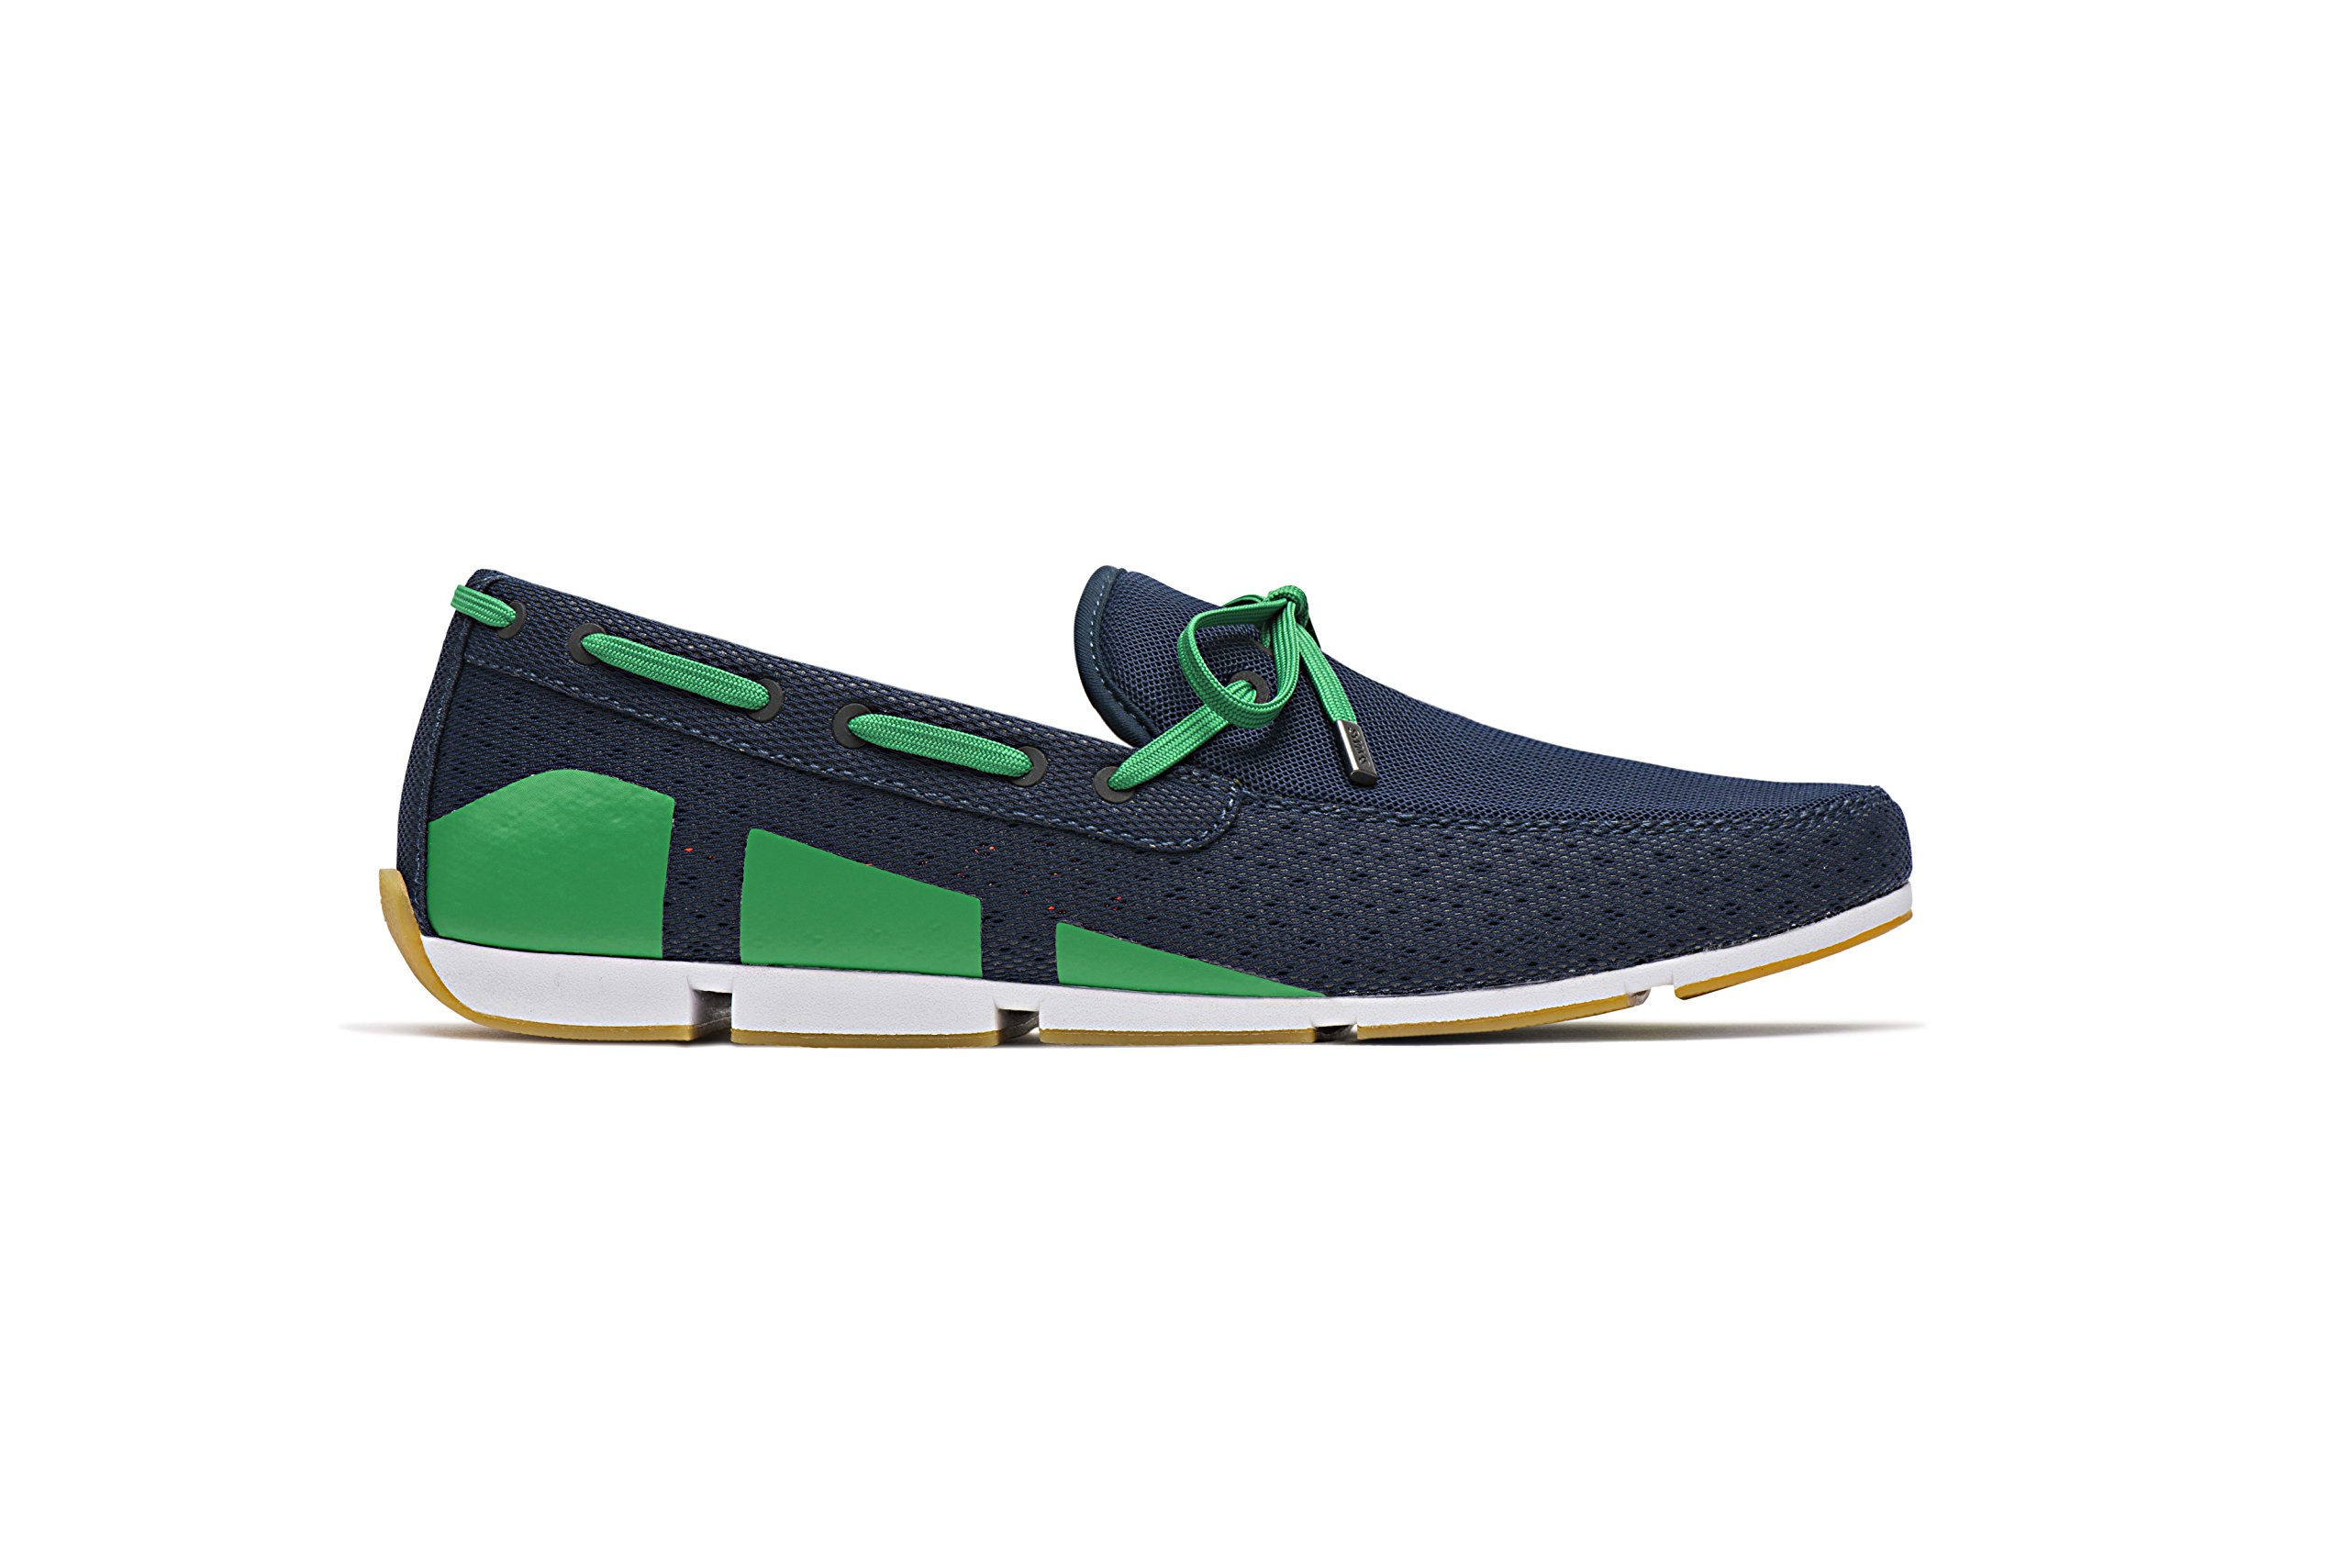 SWIMS Men's Breeze Loafer for Pool and Summer - Navy/Green/White, 10